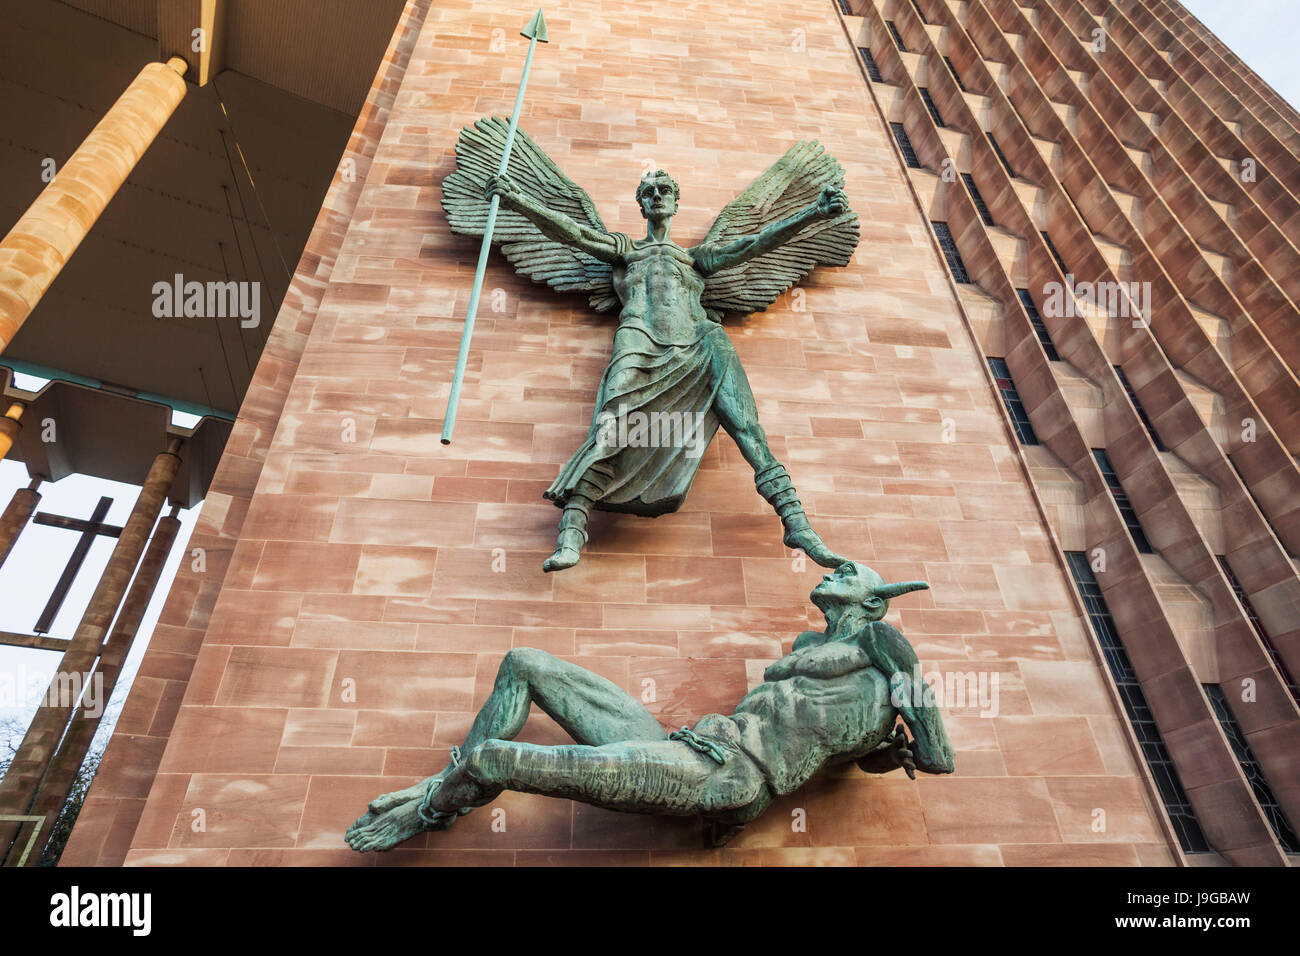 England, Warwickshire, Coventry, New Coventry Cathedral, Bronze Statue of St Michael and the Devil Sculptured by - Stock Image